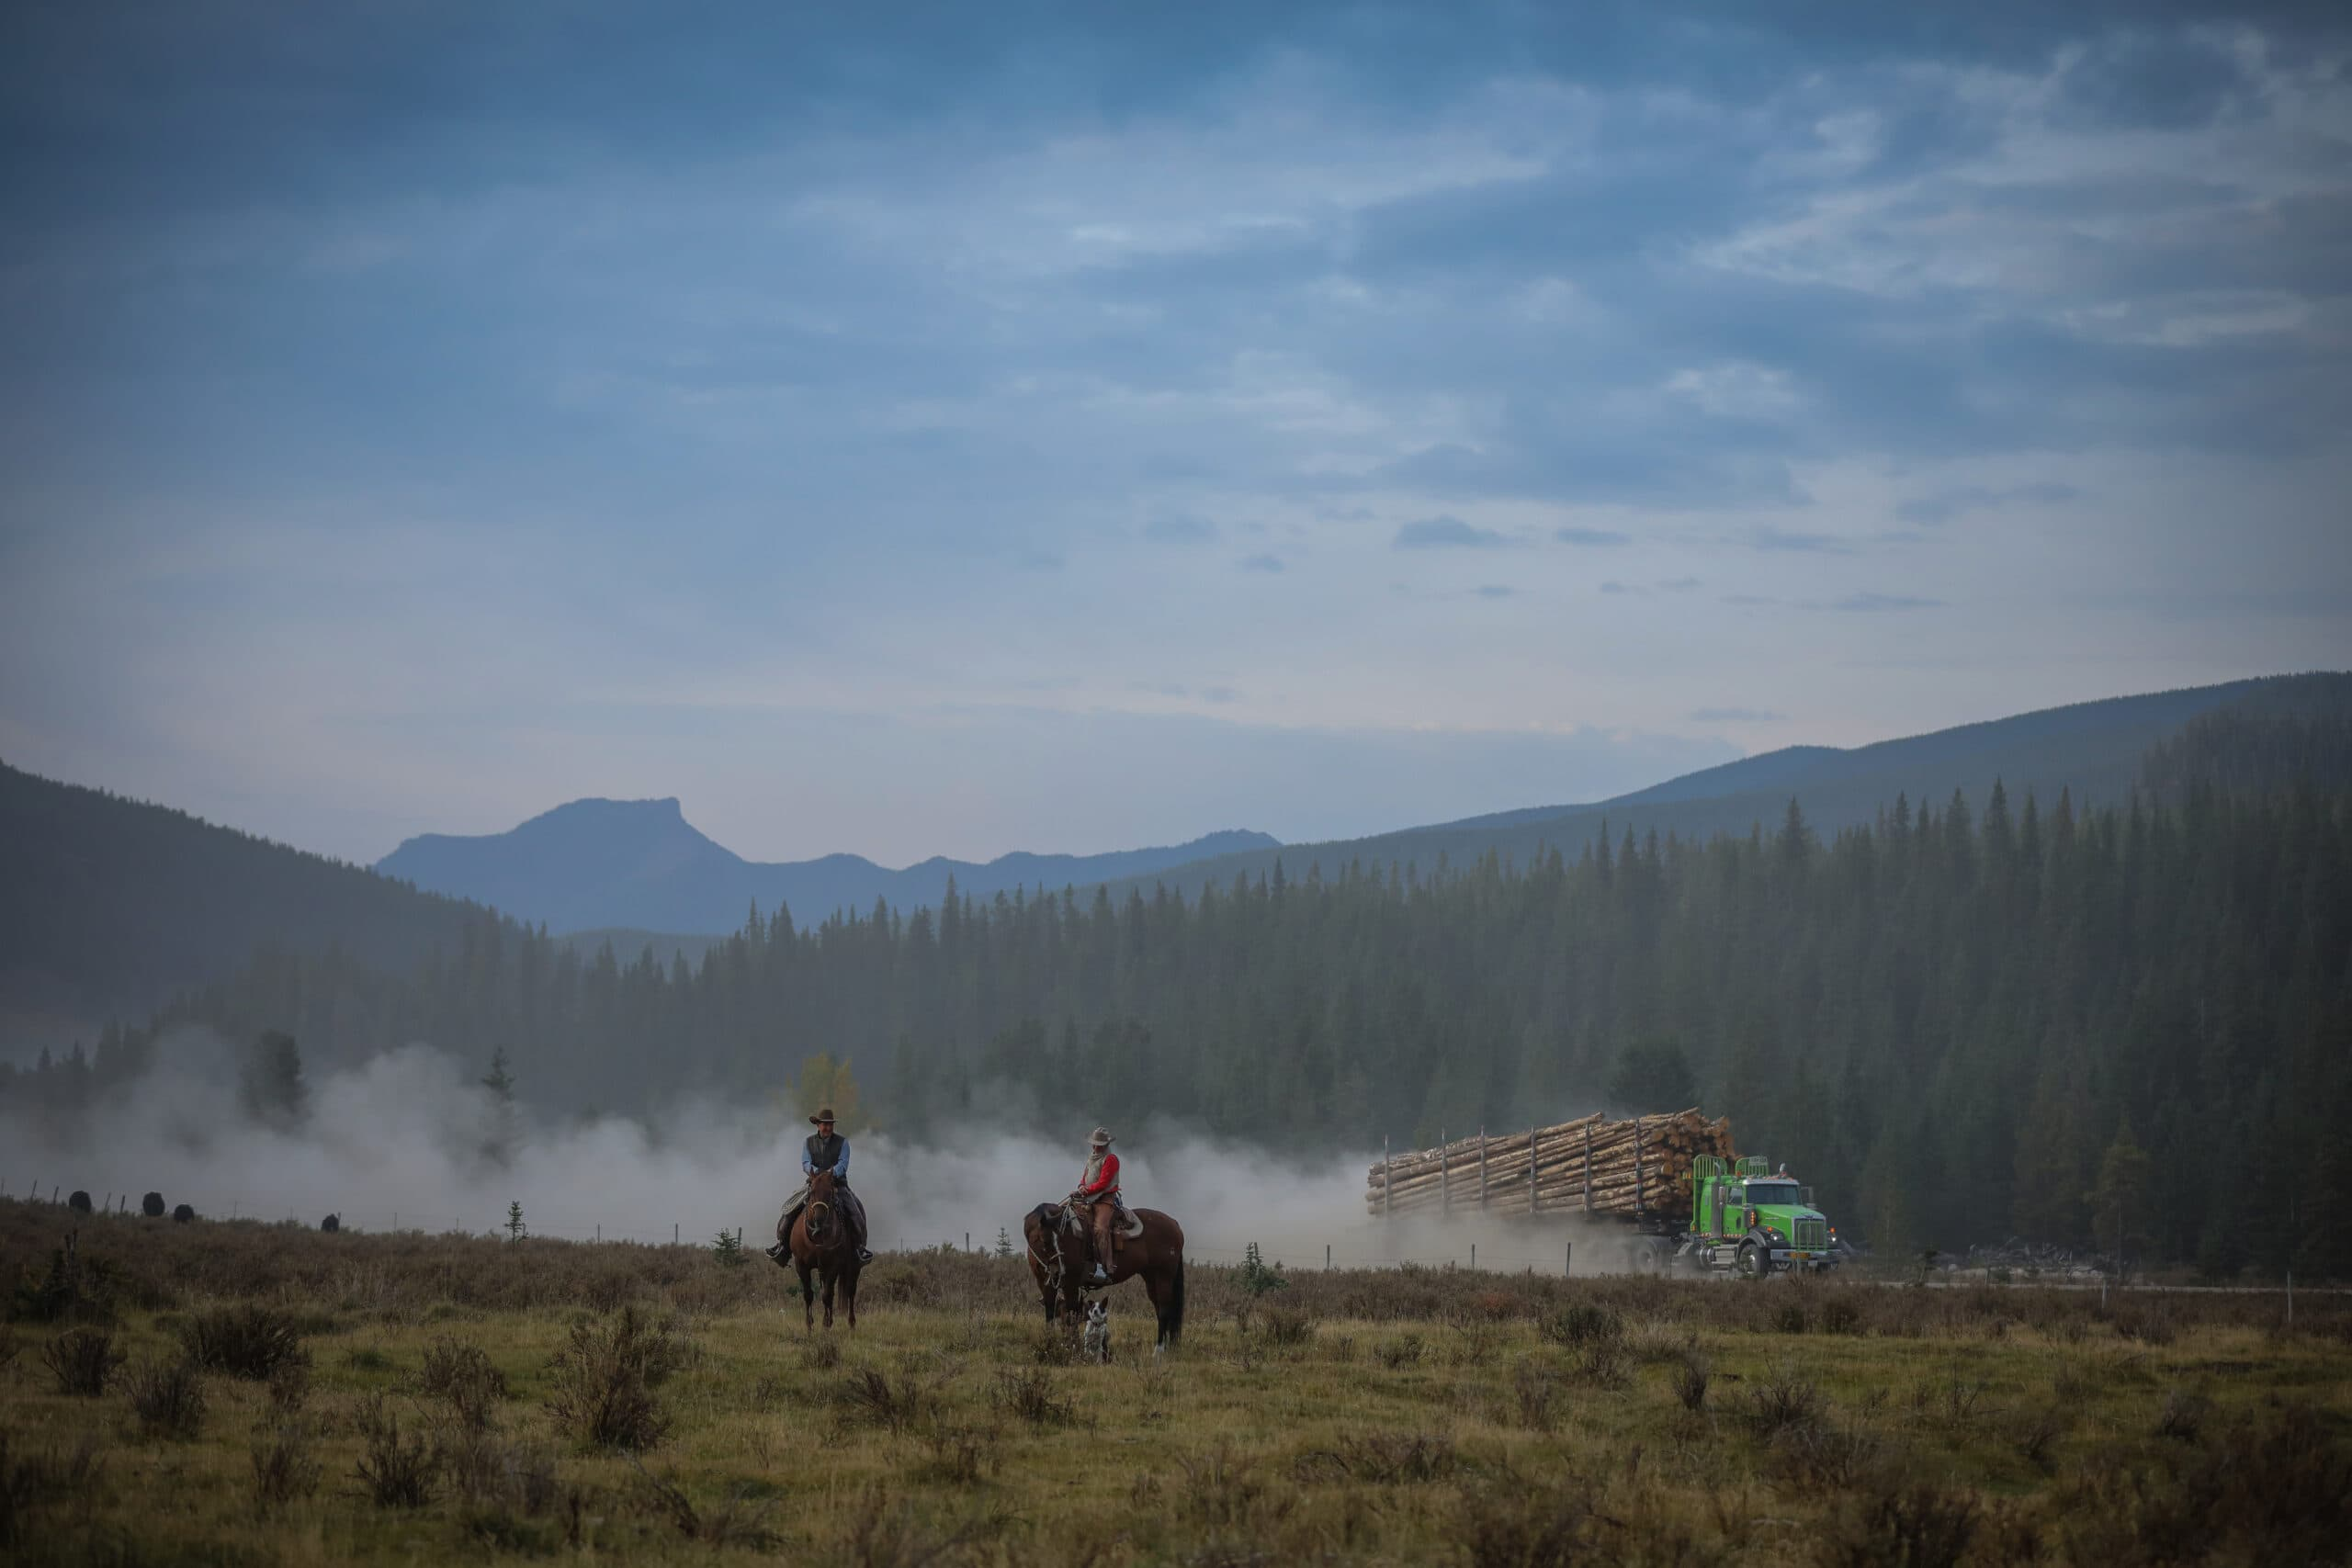 John Smith and Laura Laing ride on horses while log truck passes in the background